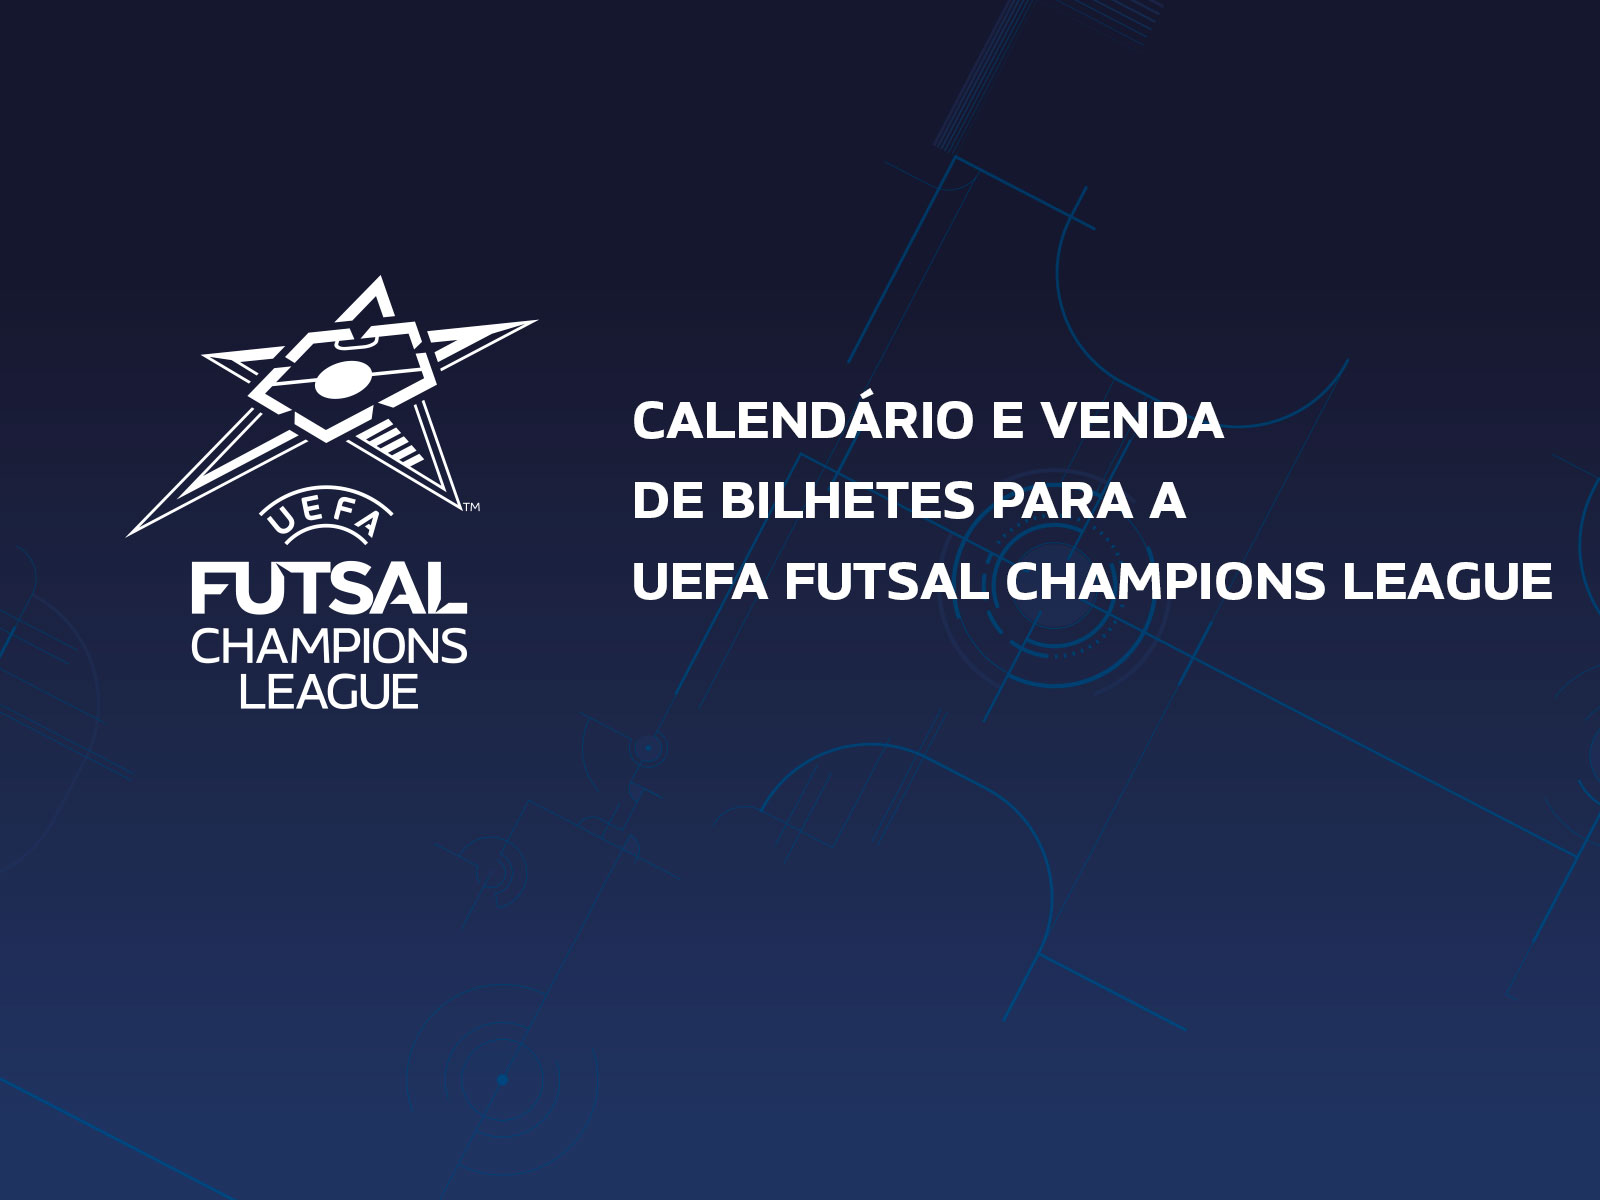 https://scpconteudos.pt/sites/default/files/revslider/image/banner-futsal-champs-HP-Completo.jpg